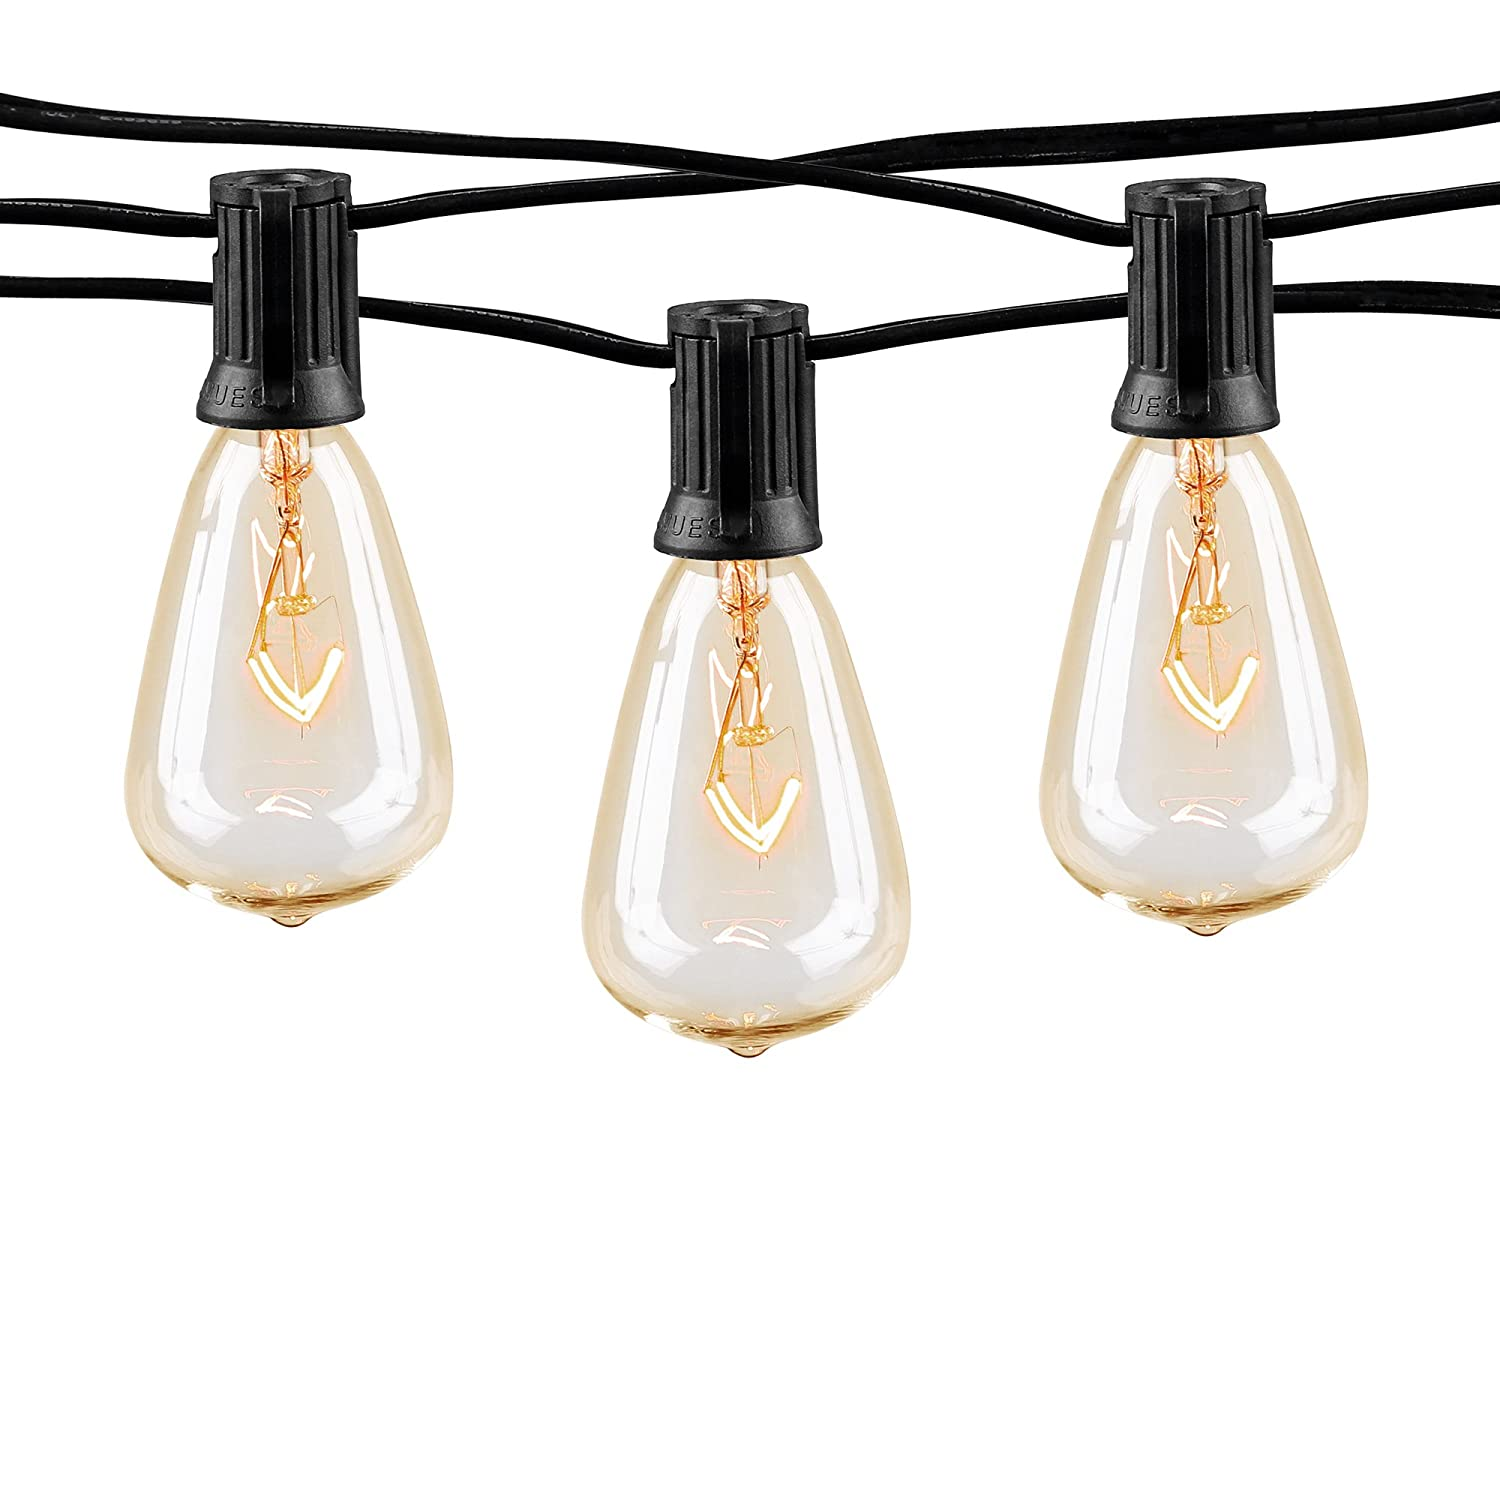 10Ft Outdoor Patio String Lights with 10 Clear ST38 Bulbs UL Listed C7 Light String for Garden Backyard Deckyard Party Pergola Bistro Porch Pool Umbrella ect Black Wire